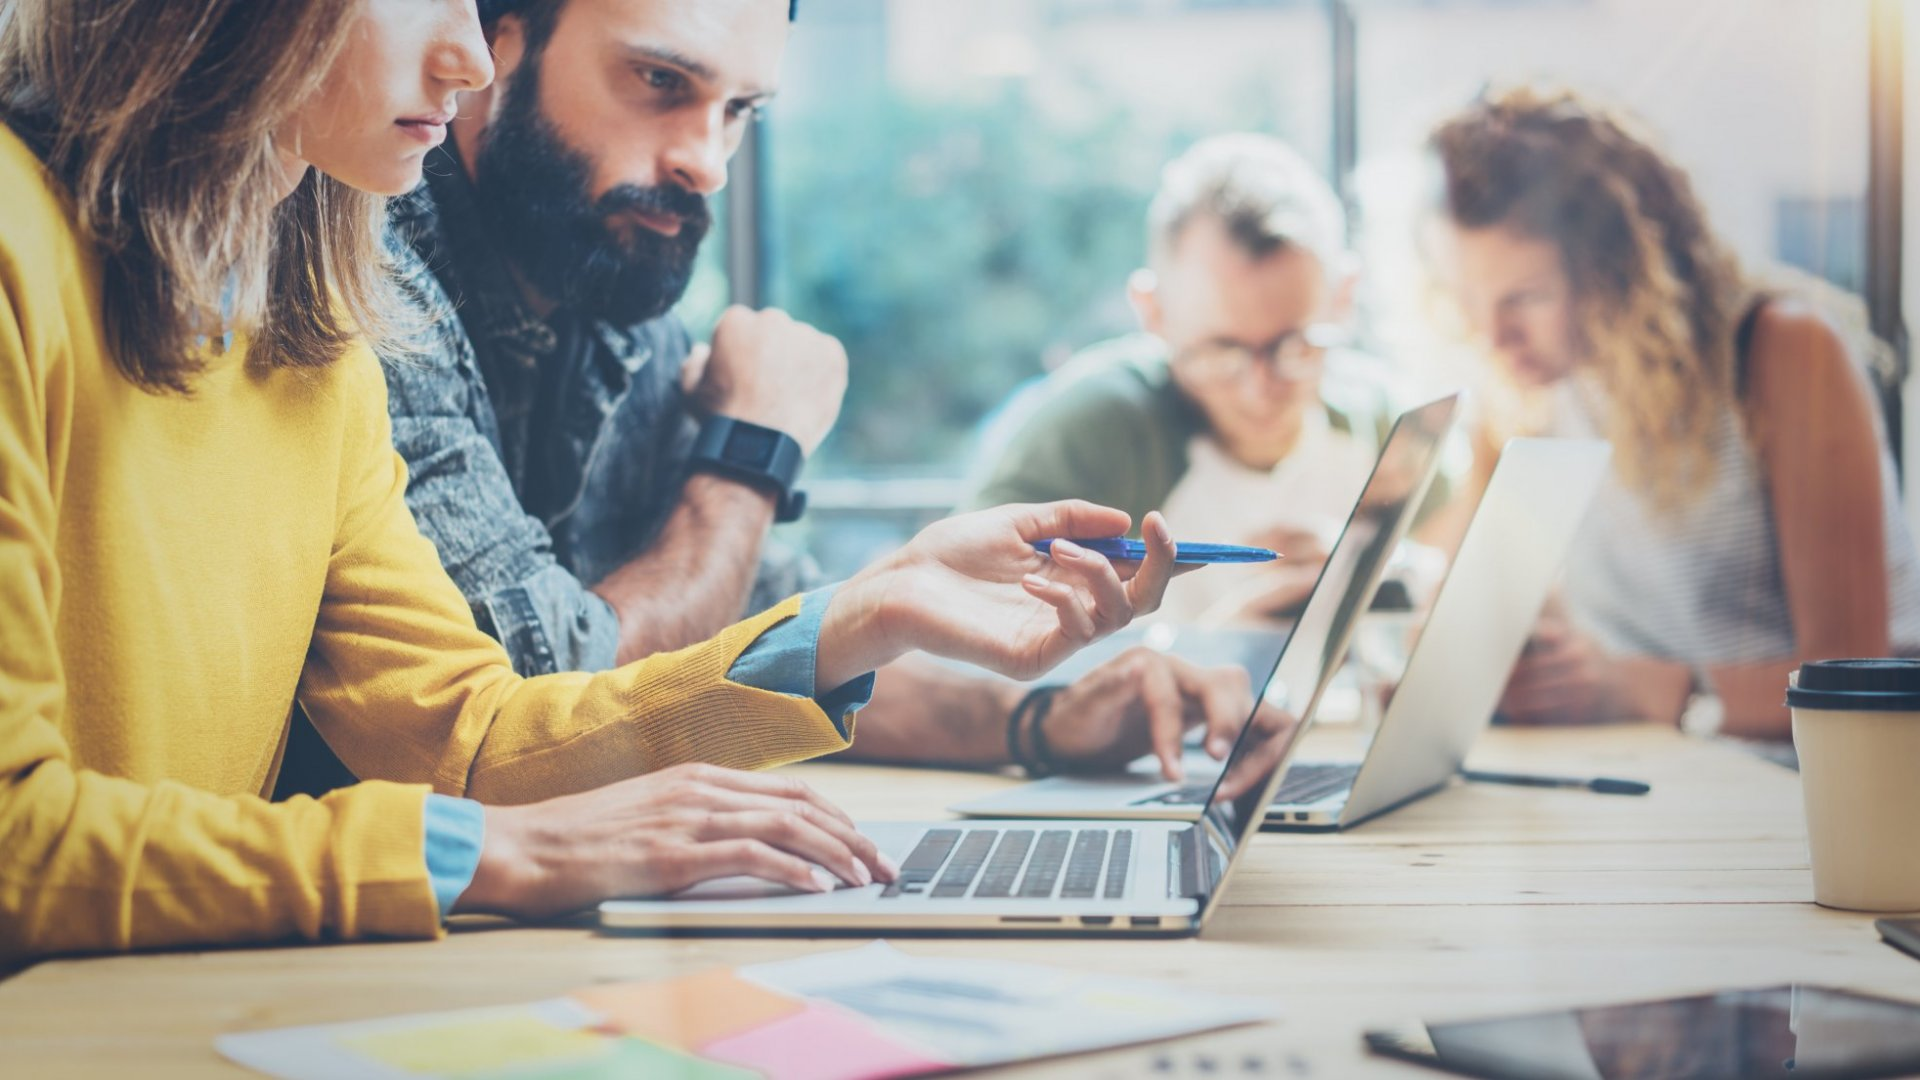 5 Things Your Marketing Team Will Thank You for Outsourcing